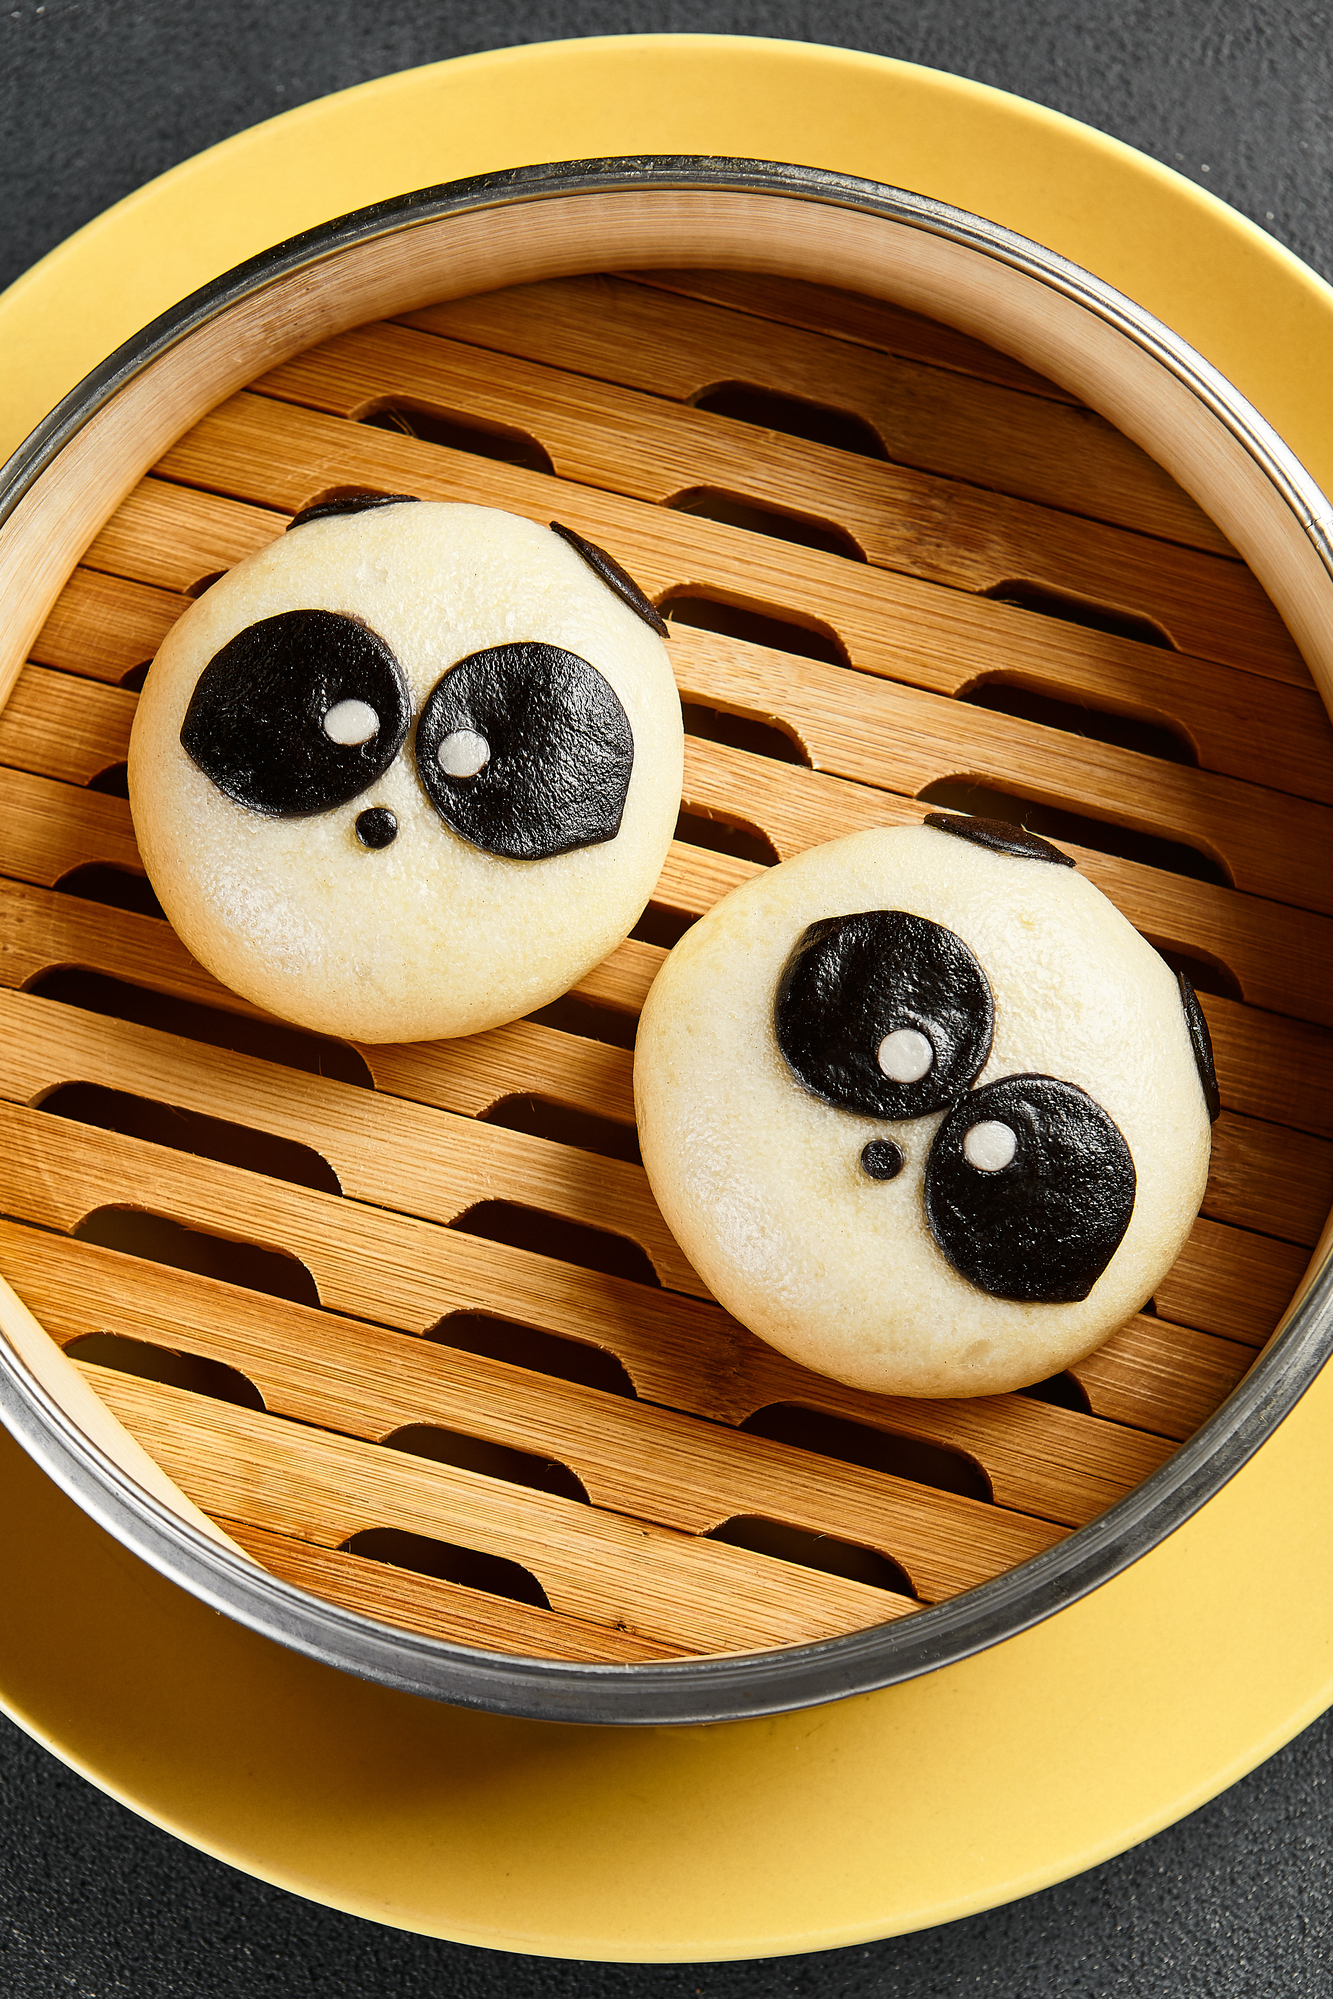 20+ Bao Puns and Jokes For Instagram Captions that are Absolutely Bao-tiful